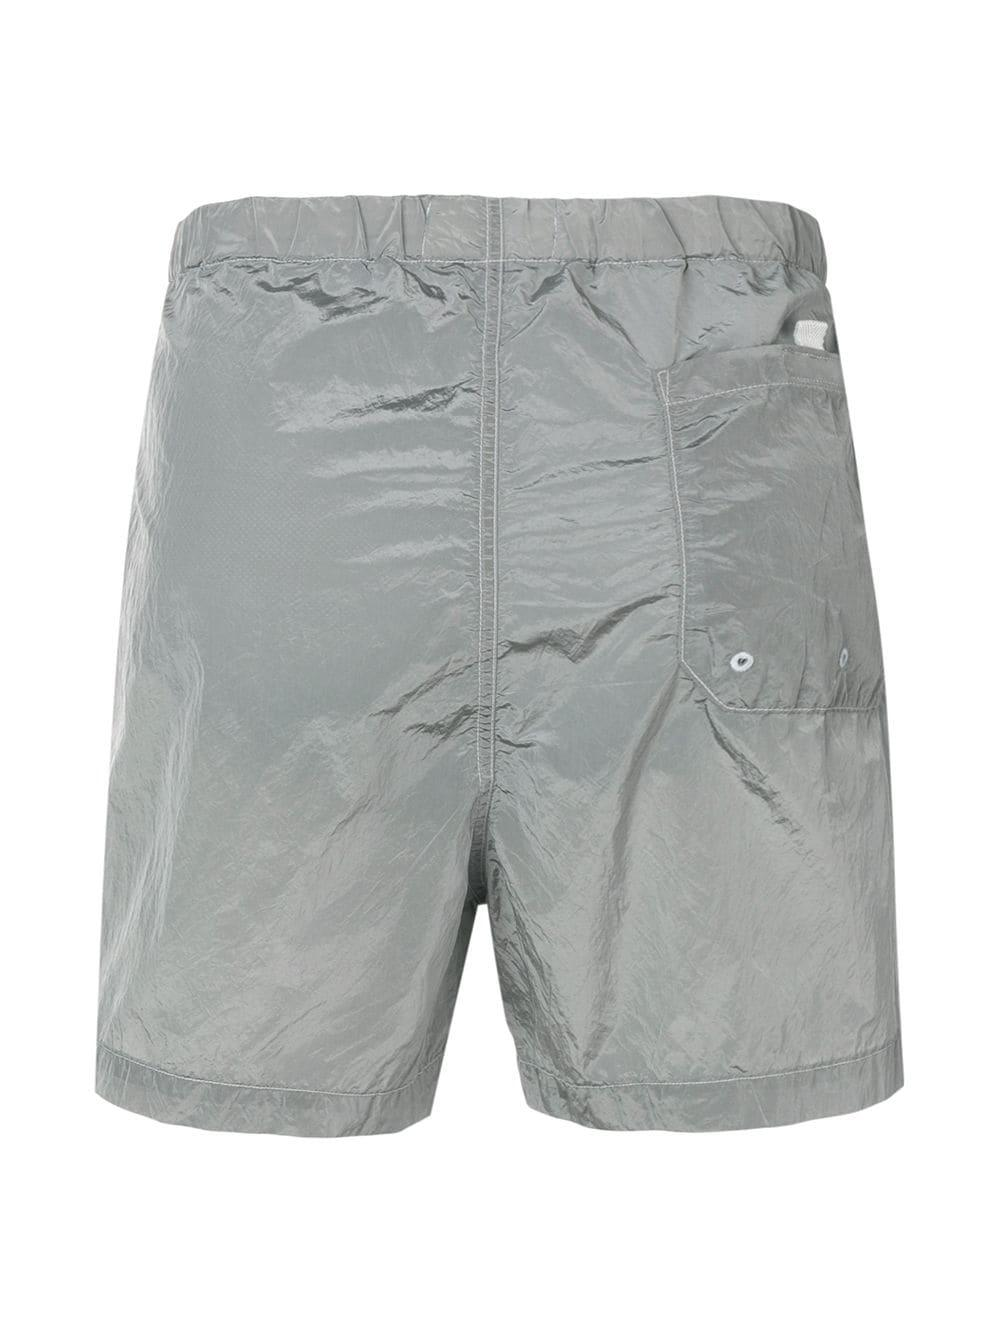 e76755c8f4 Lyst - Stone Island Classic Swim Shorts in Gray for Men